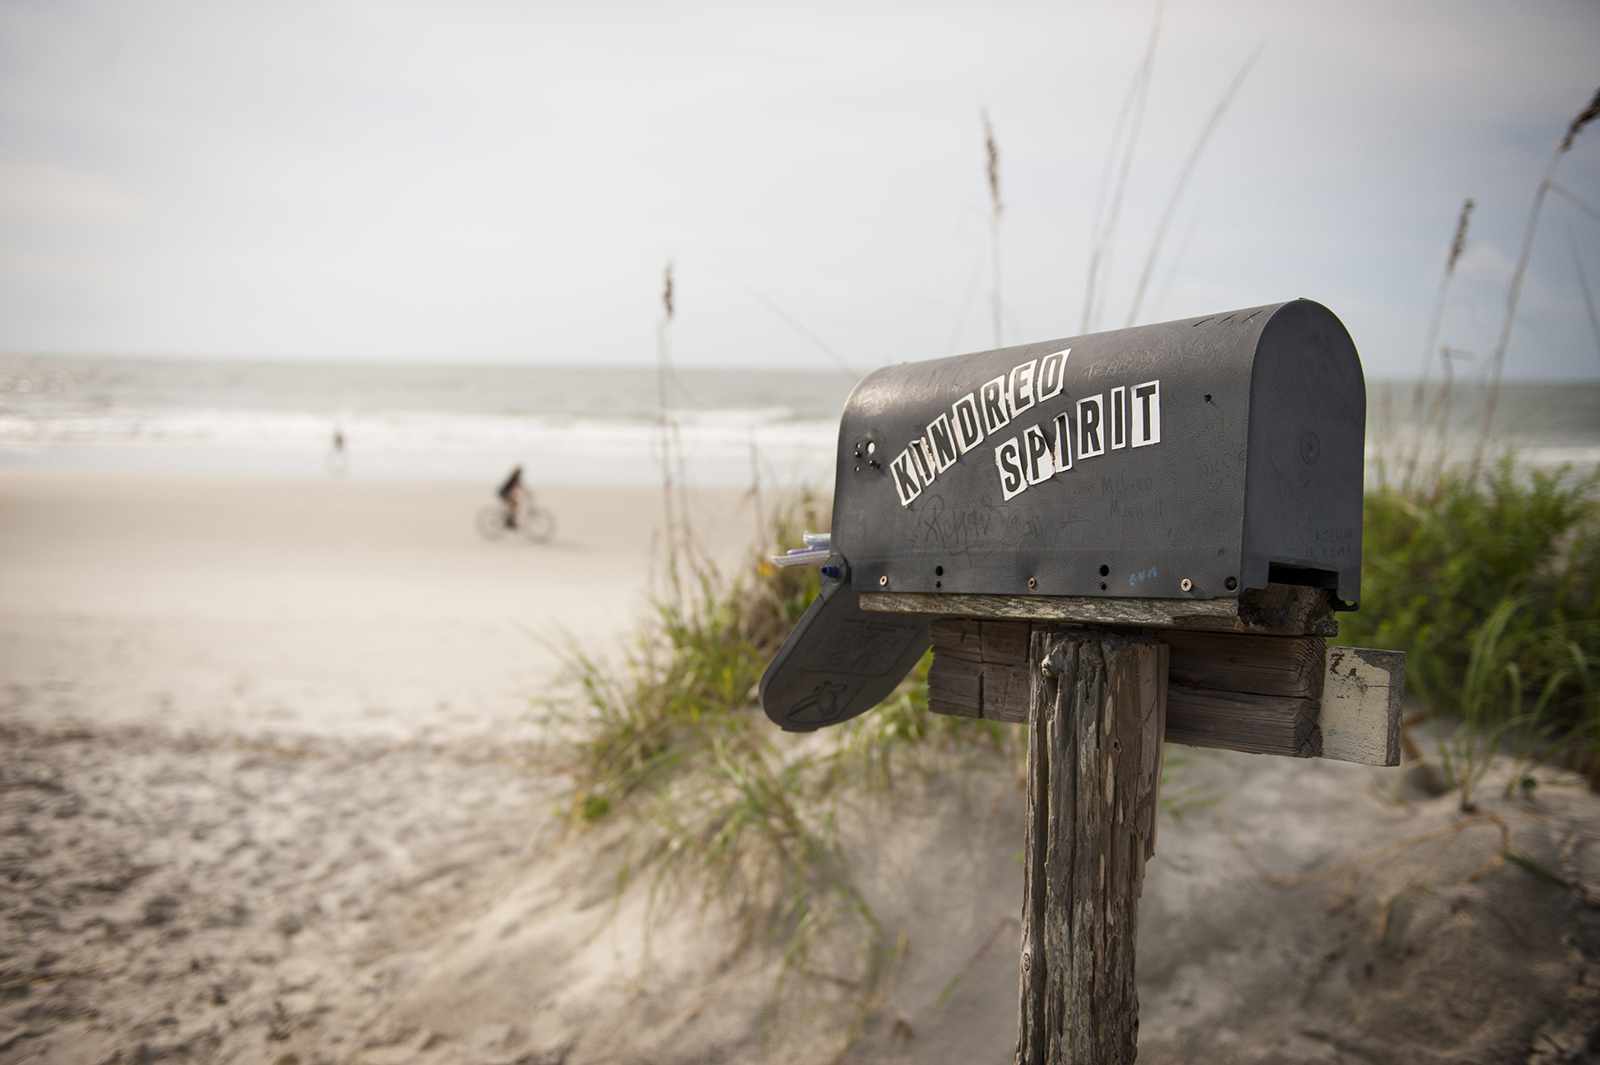 North Carolina: Kindred Spirit Mailbox on Bald Island